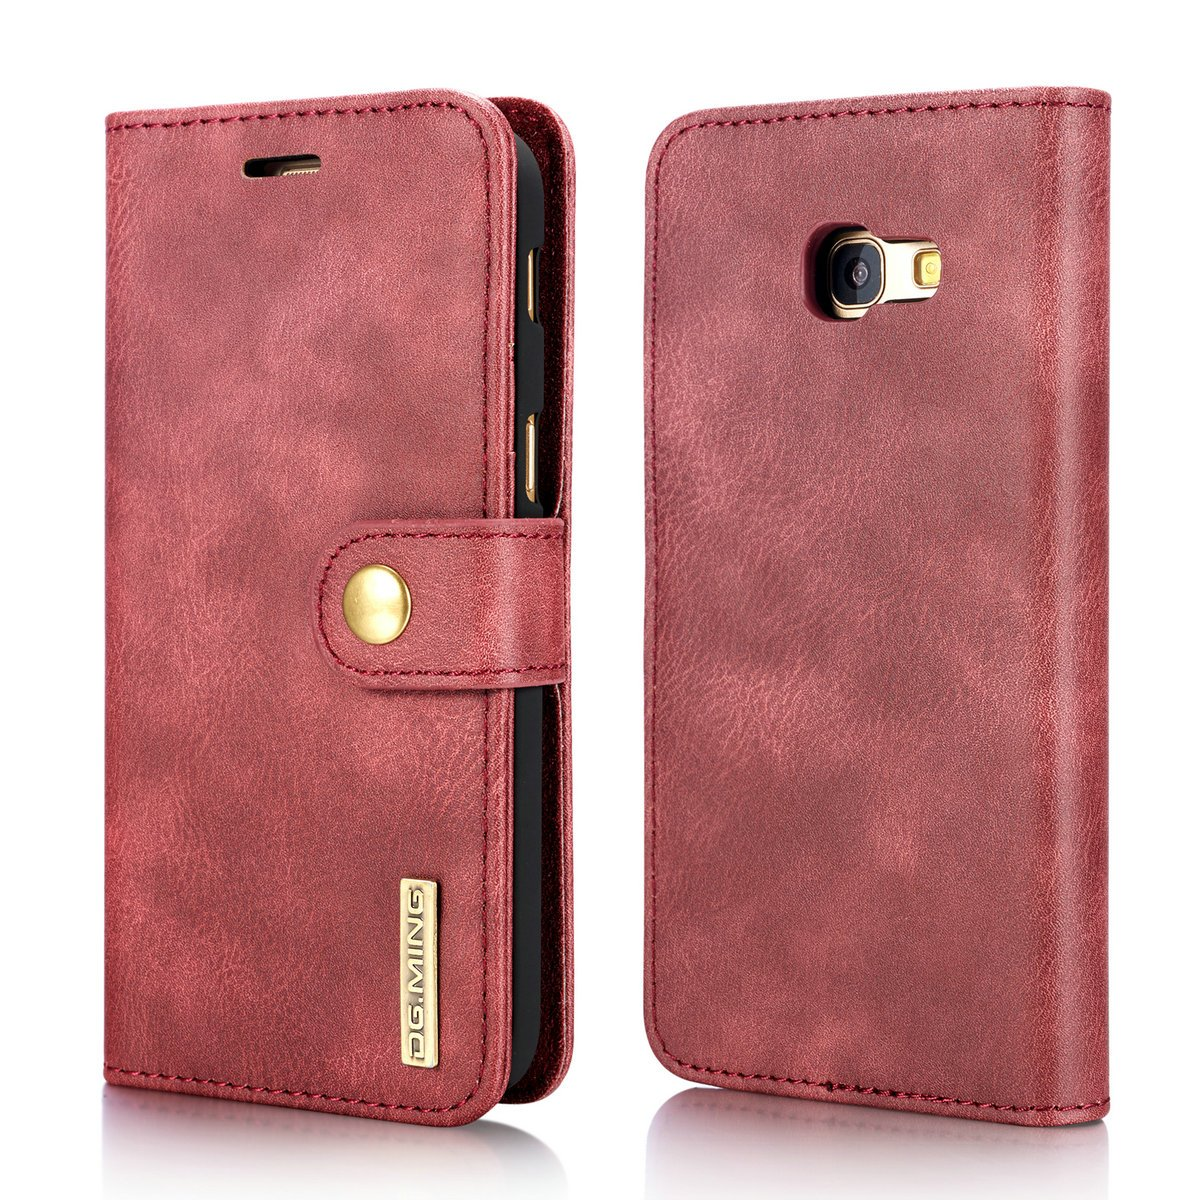 Galaxy A5 2017 Case, DG.MING Retro Cowhide Leather Magnetic Detachable 2 in 1 Flip Wallet Cover Case for Samsung Galaxy A5 2017 A520 (Black) Bestfitshop